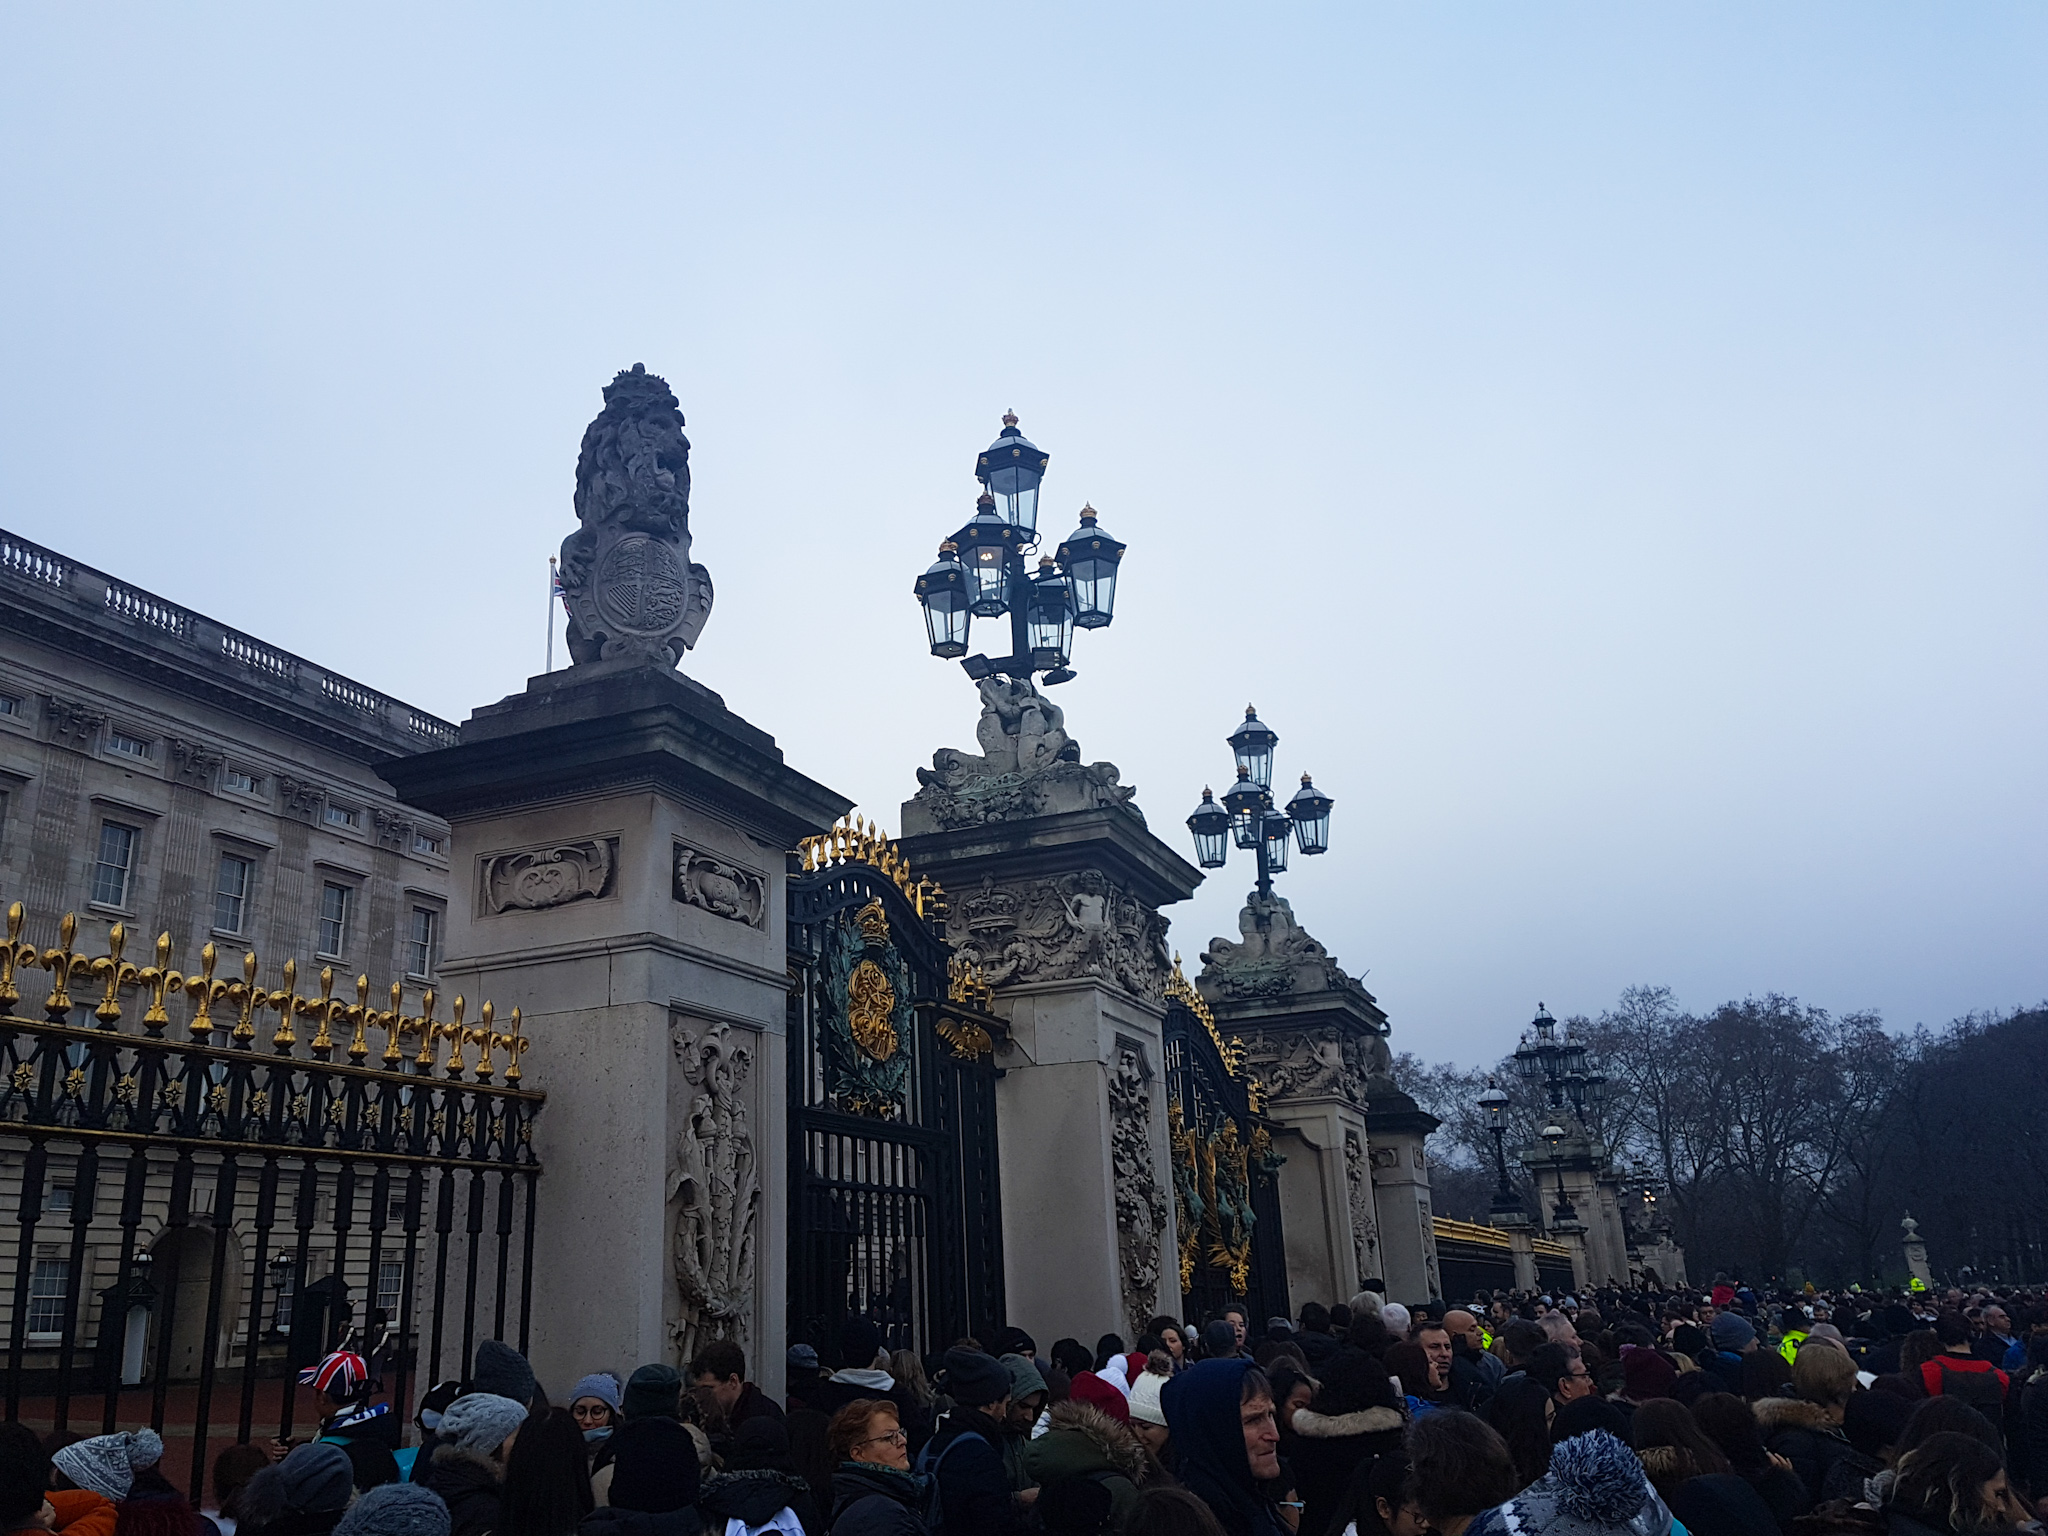 The crowd outside of Buckingham Palace. I was just waiting to see if Meghan Markle was going to come out and greet me! I sent her a few emails……